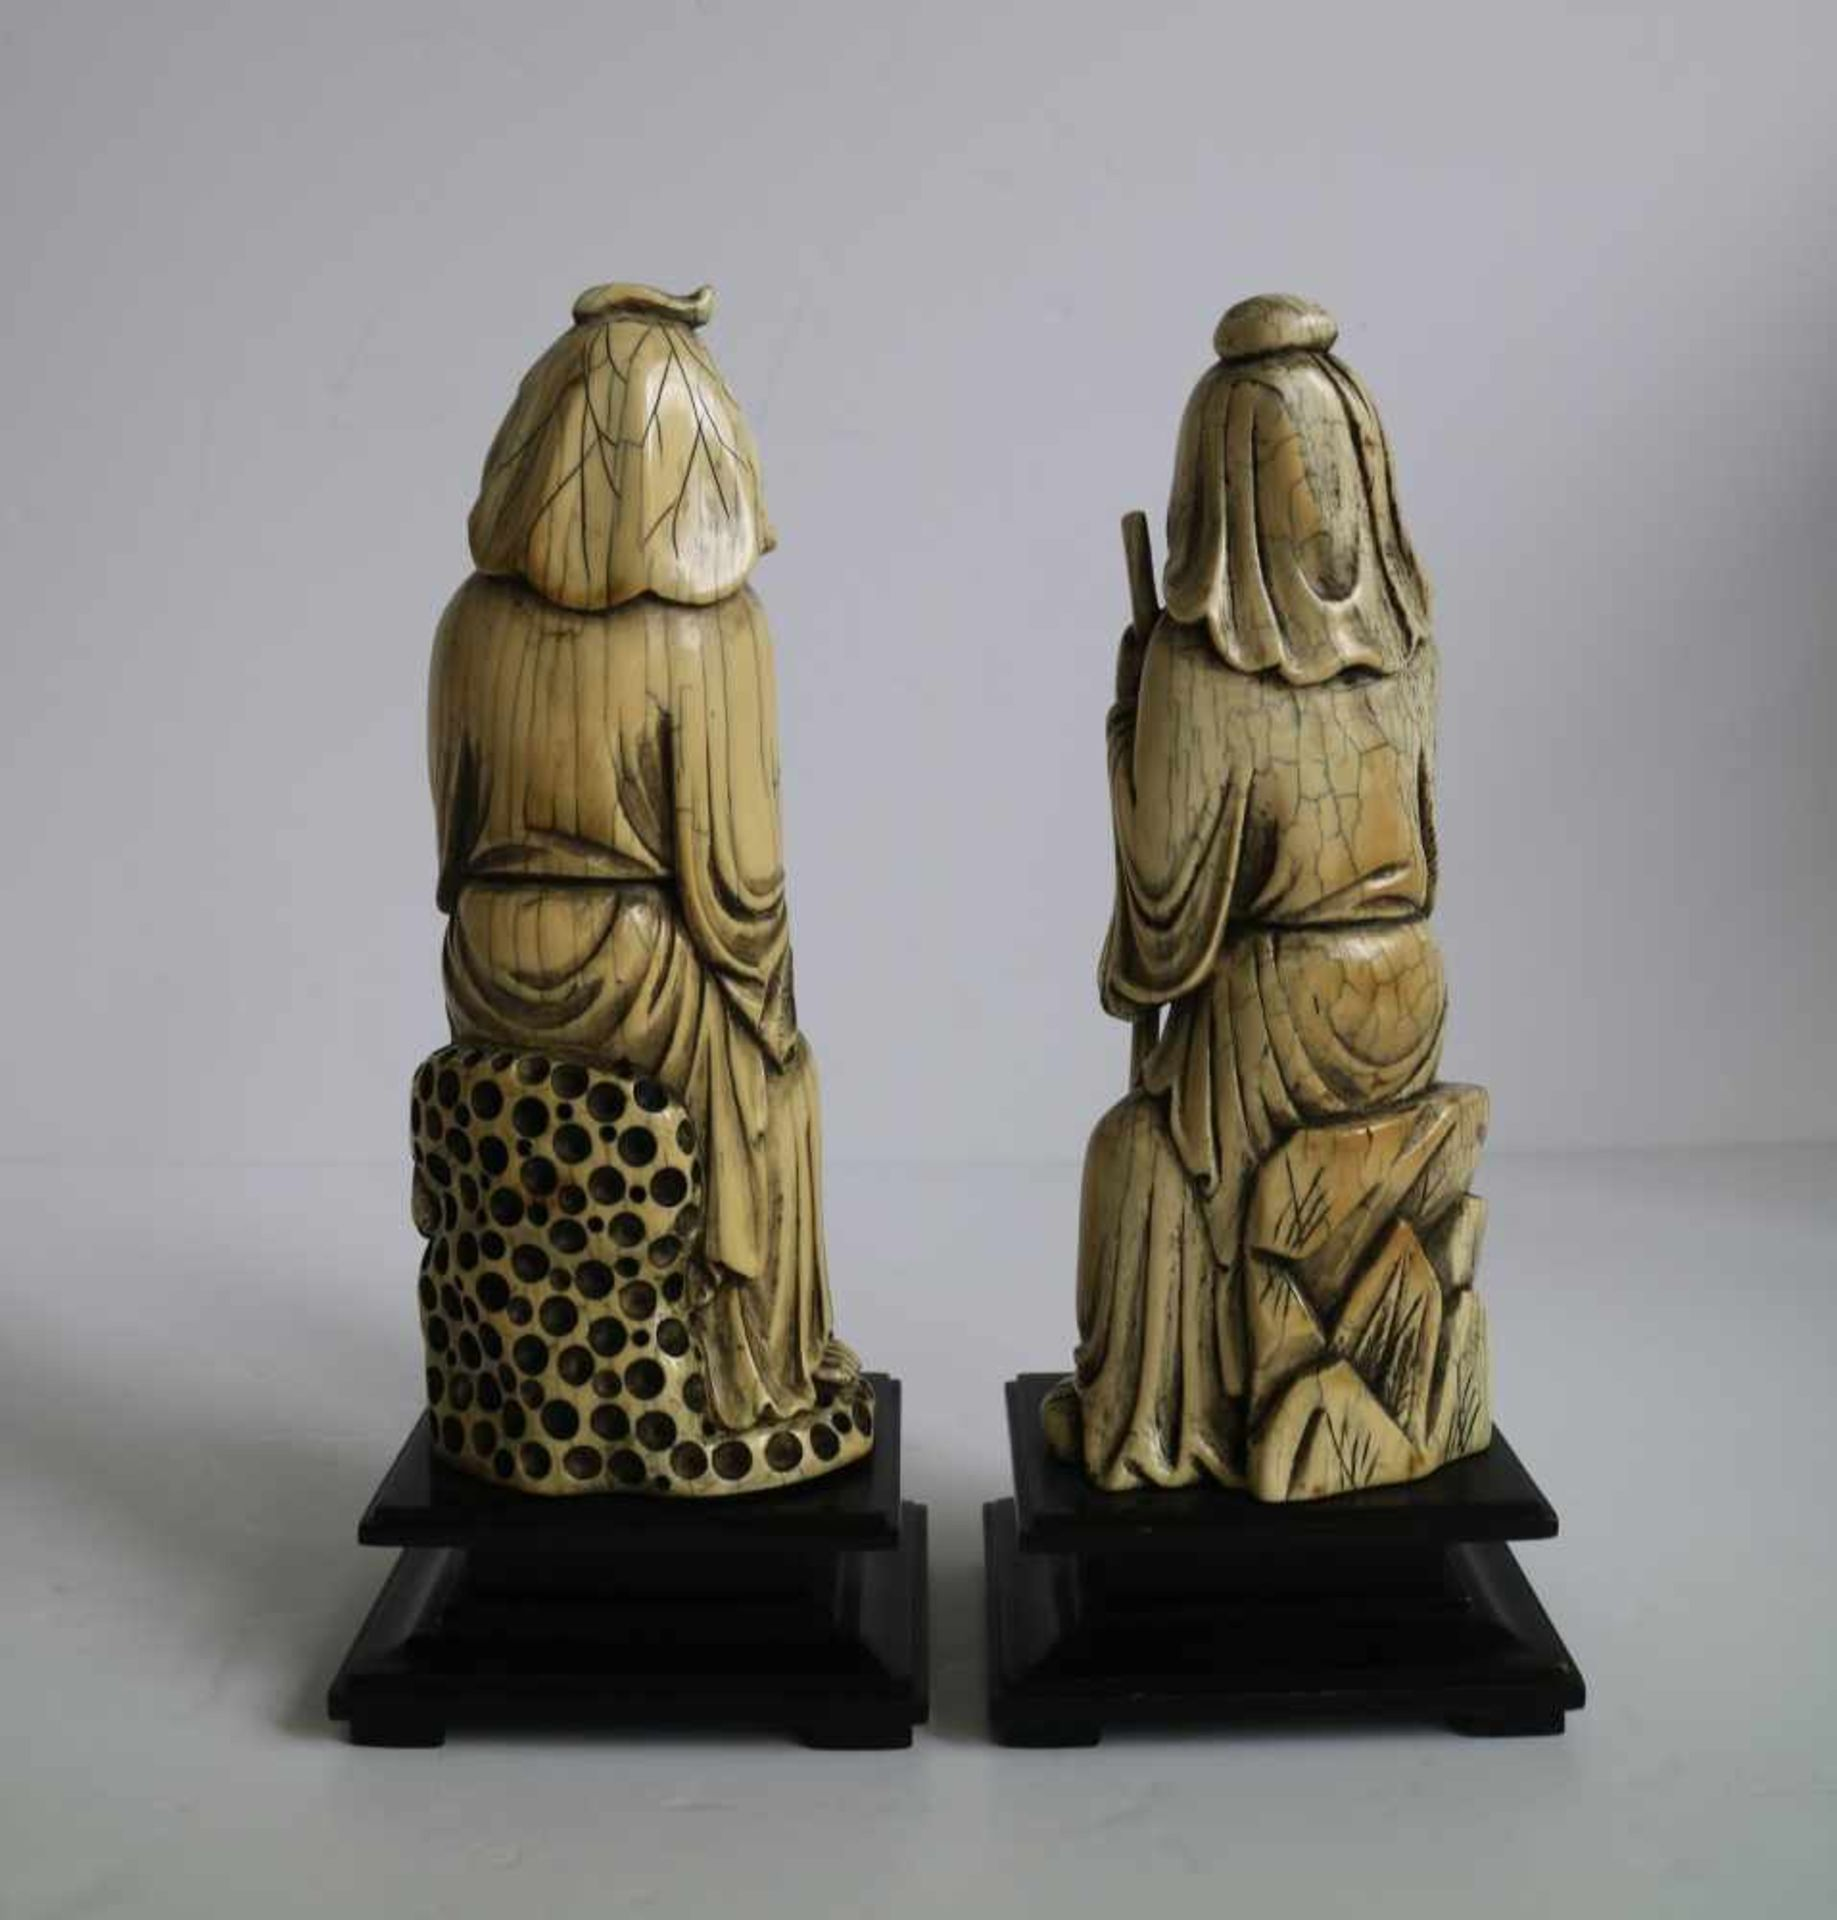 Los 670 - A pair of mammoth ivory arhats China 1970's H 24 cm (with base)